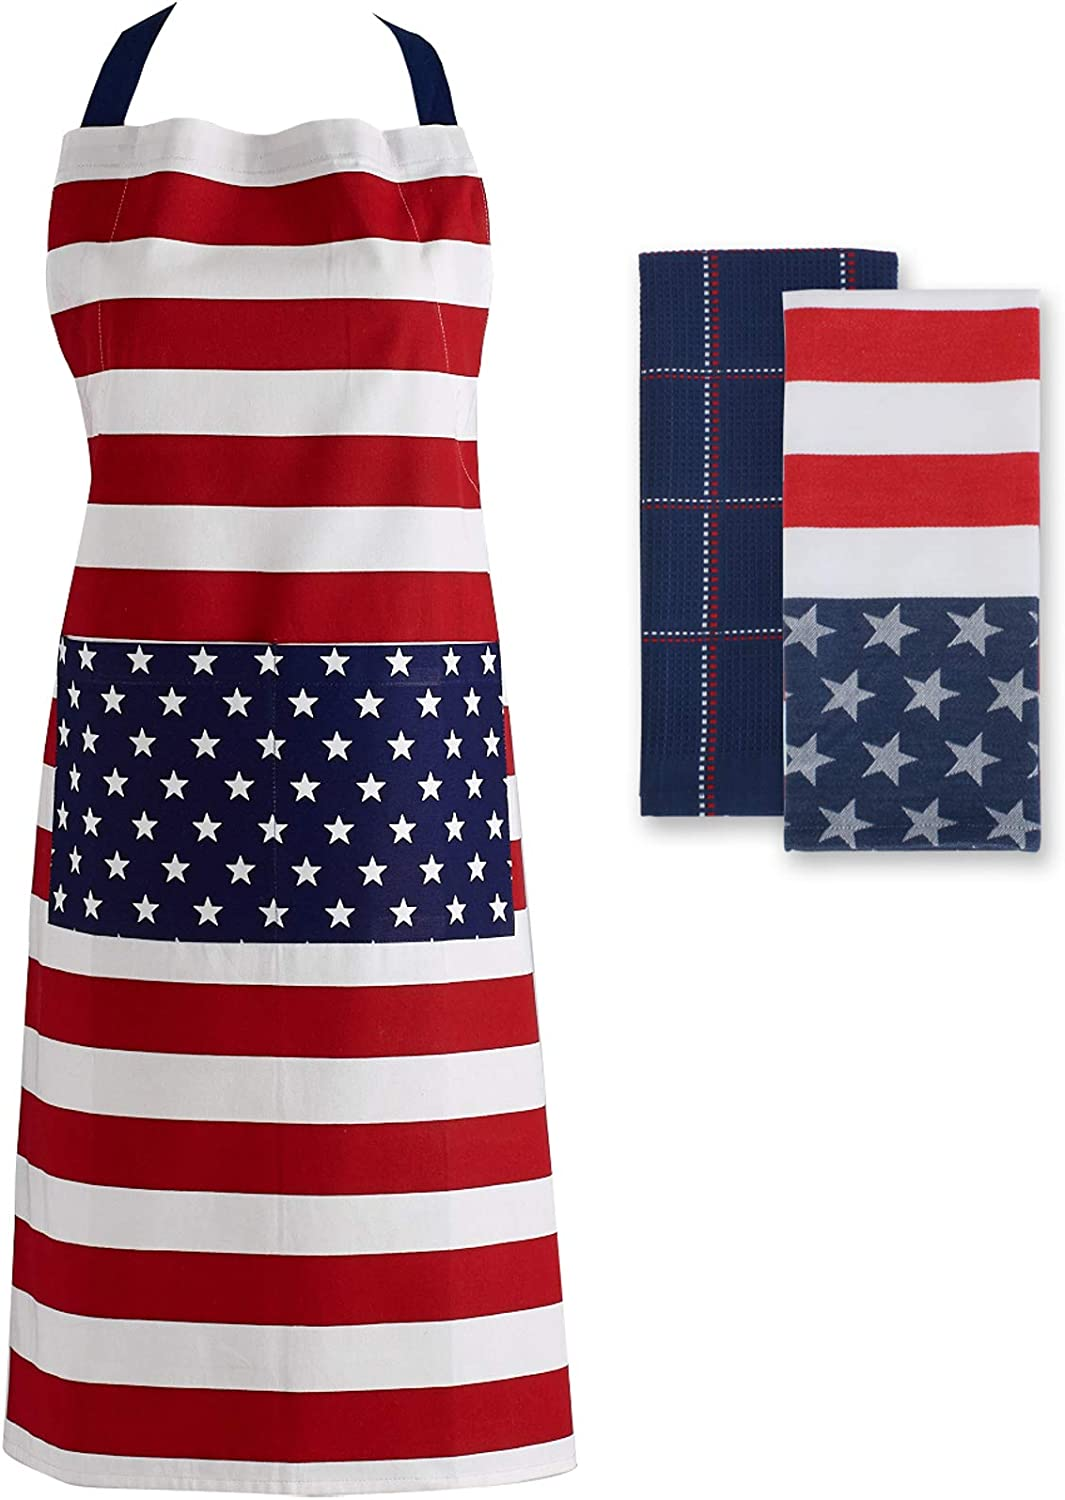 DII 4th of July Kitchen Collection 100% Machine Washable Cotton for Entertaining, Cooking, Baking or Barbeques, Set, Stars & Stripes 3 Piece